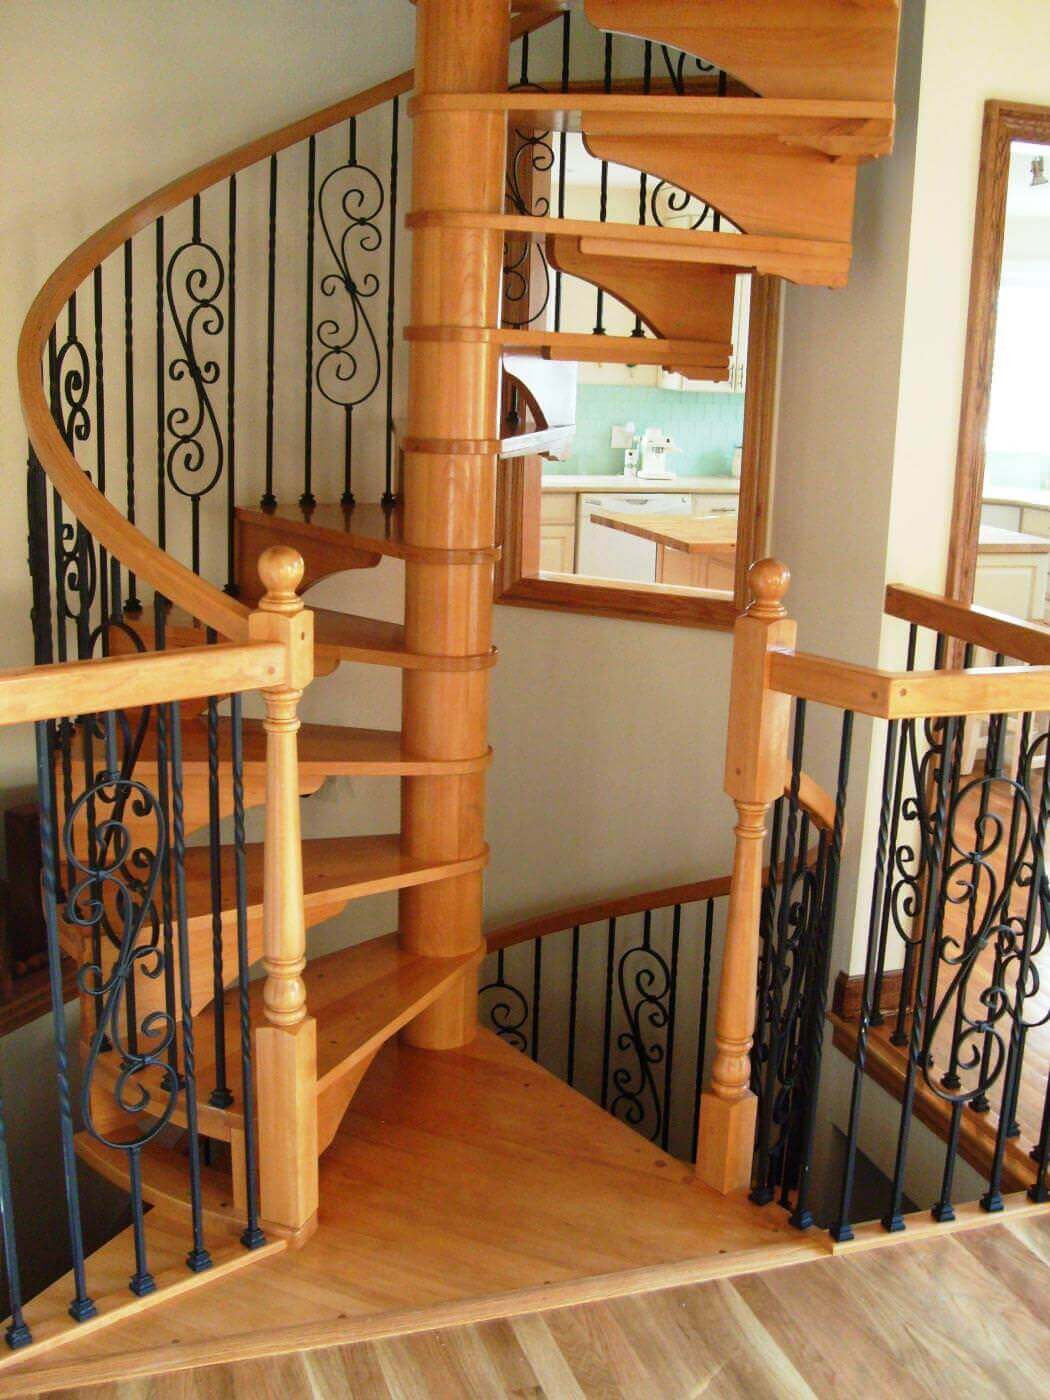 Best ideas about Spiral Staircase Songs . Save or Pin Read This Before Designing a Spiral Staircase Now.